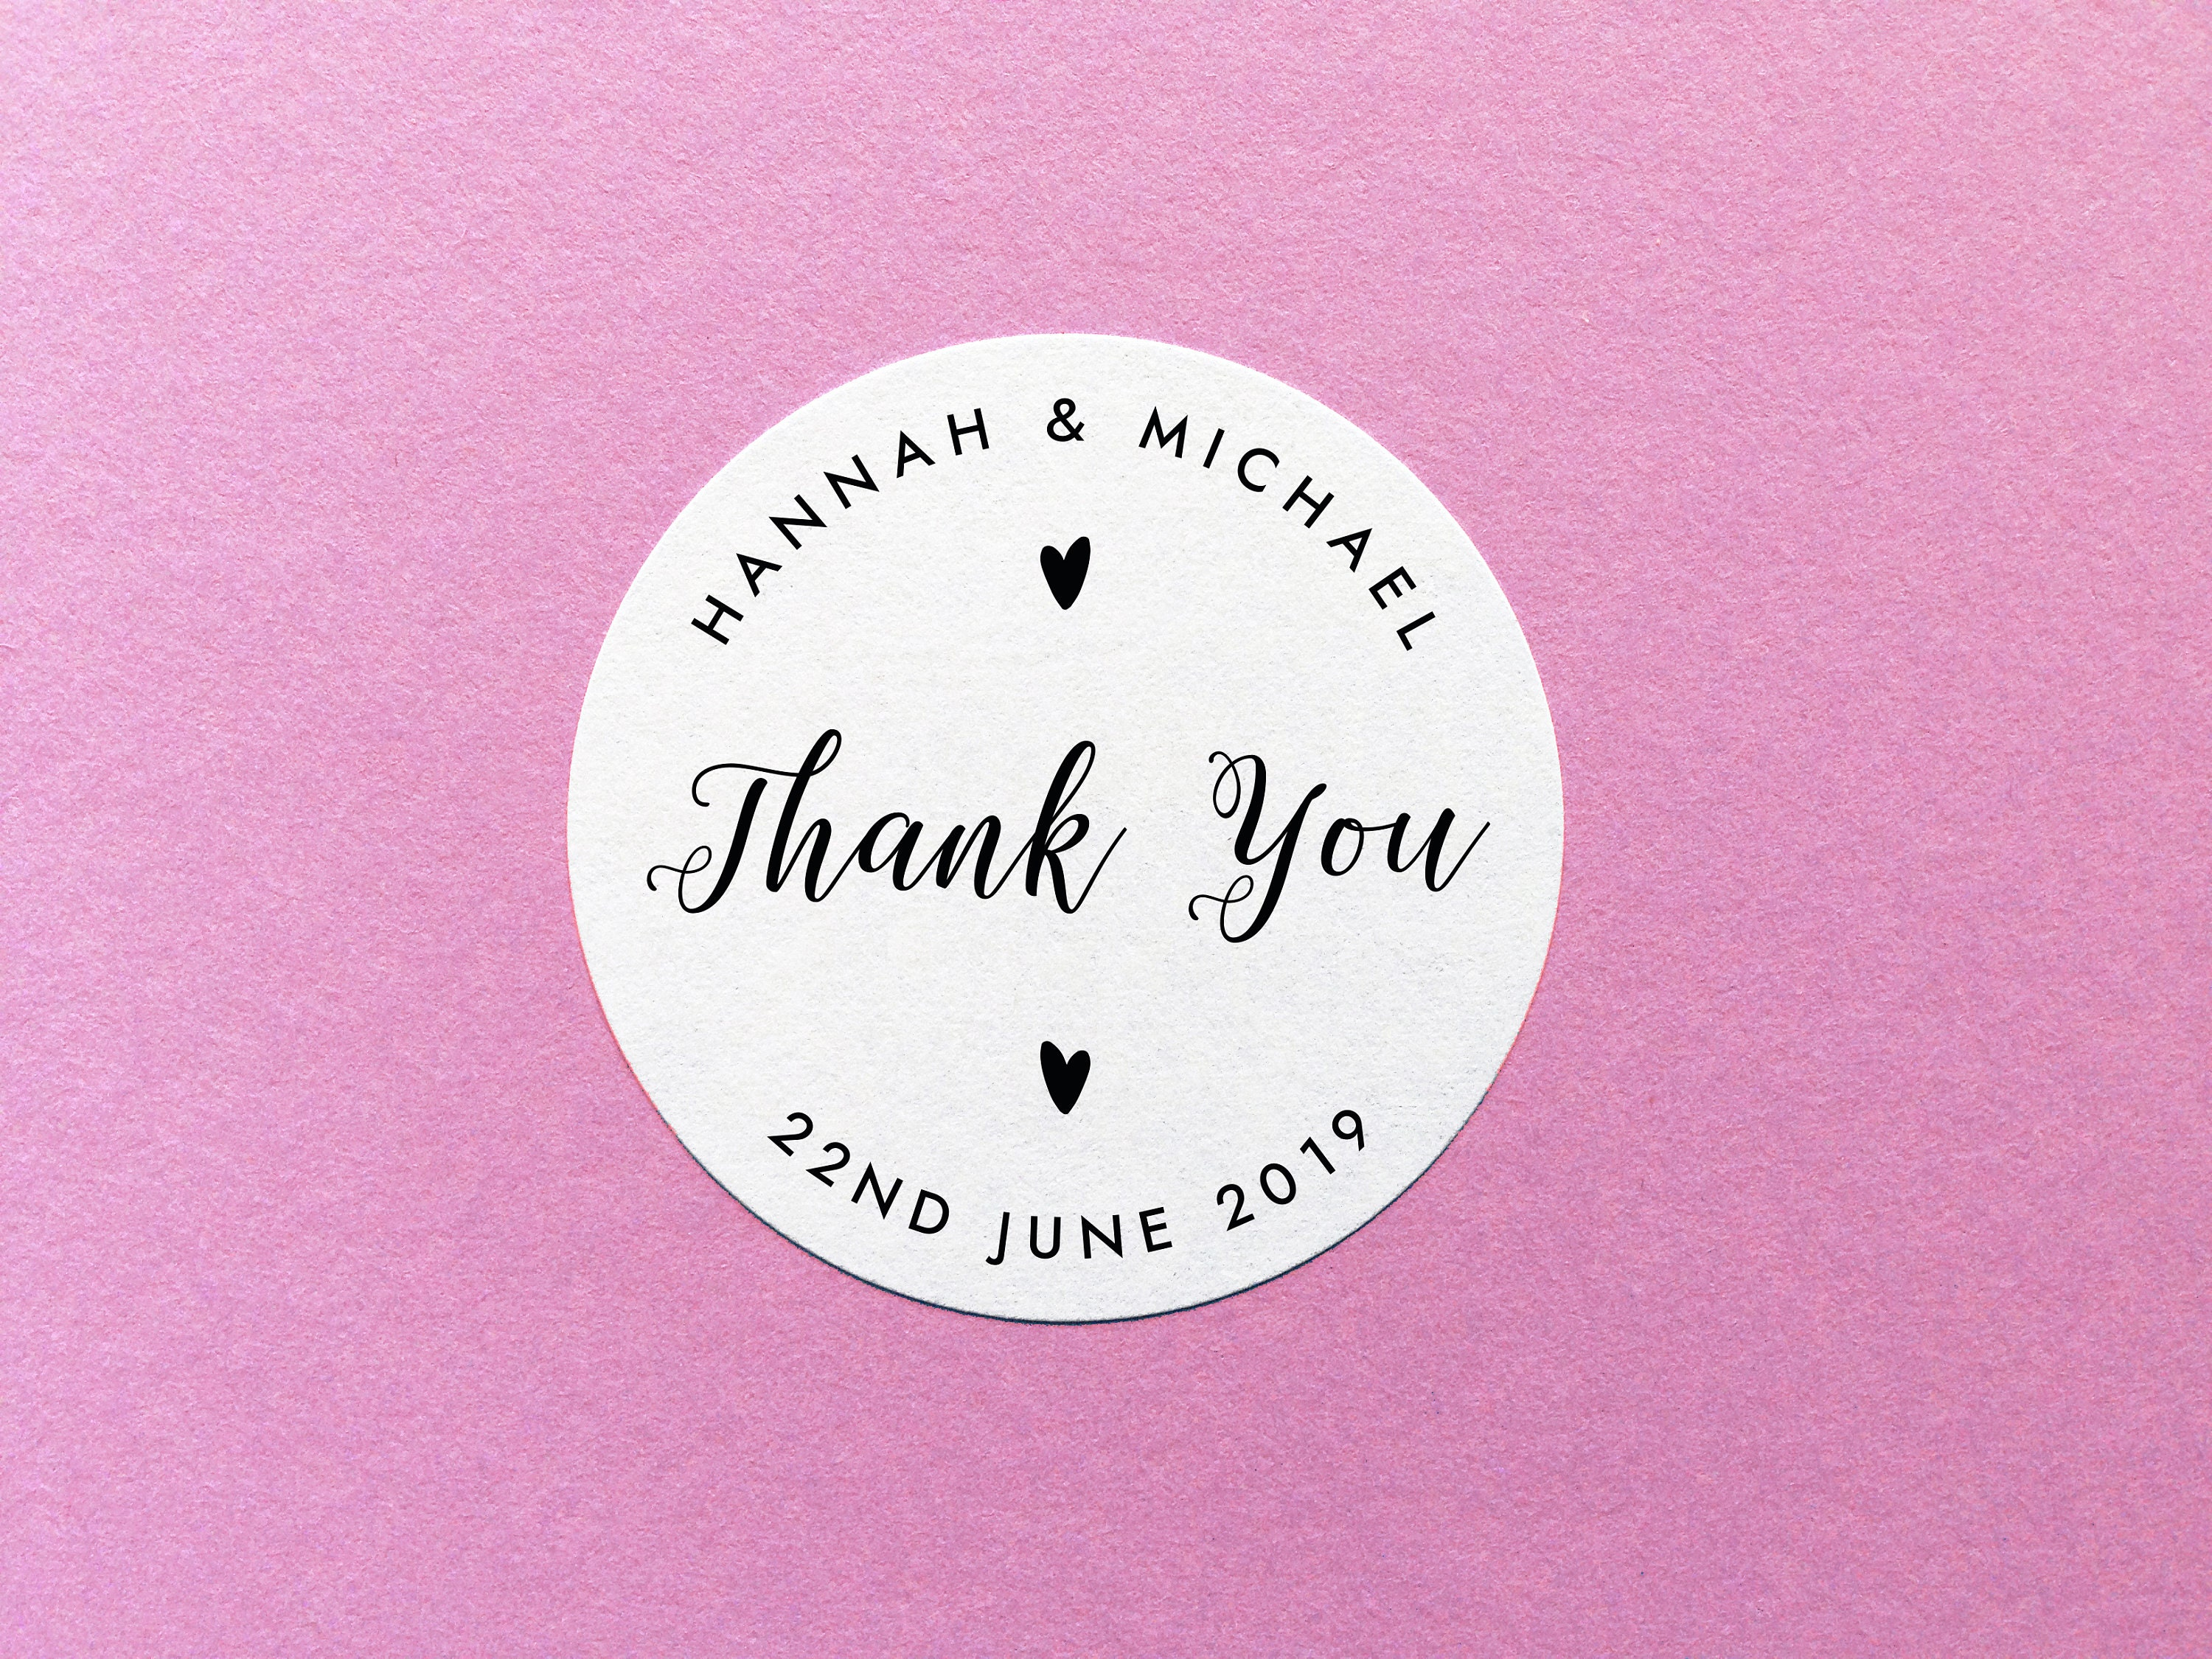 Personalised thank you stickers wedding thank you labels party favor stickers wedding favor label personalized thank you labels